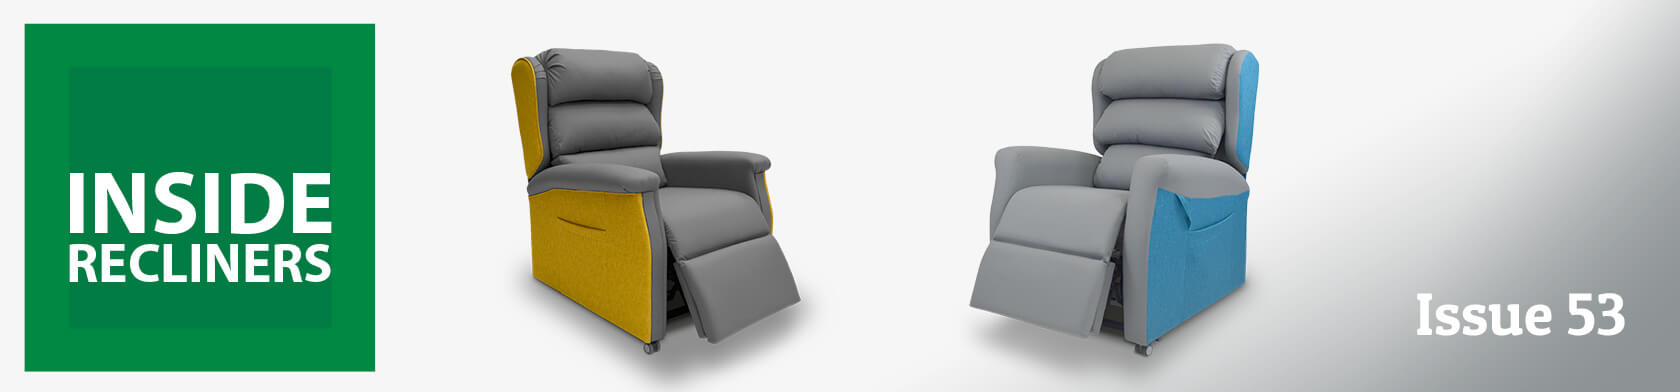 Inside Recliners — Issue 53